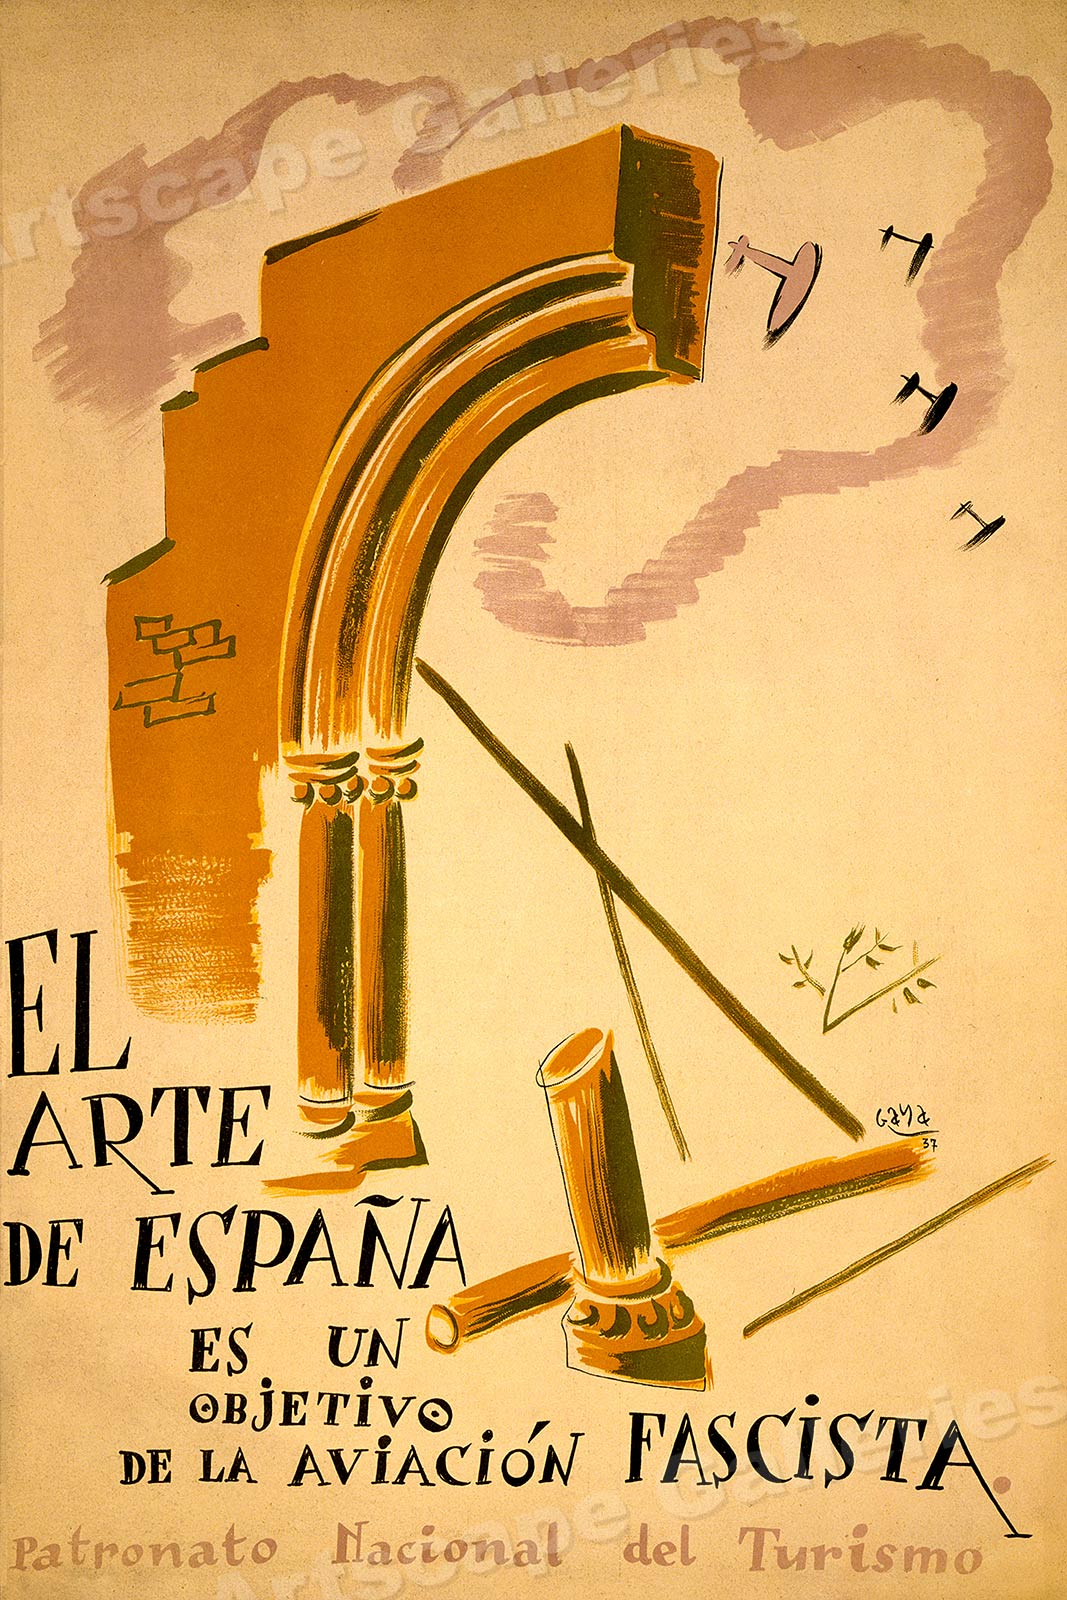 La Arte In Spanish El Arte De Espana 1930s Spanish Civil War Poster 24x36 Ebay